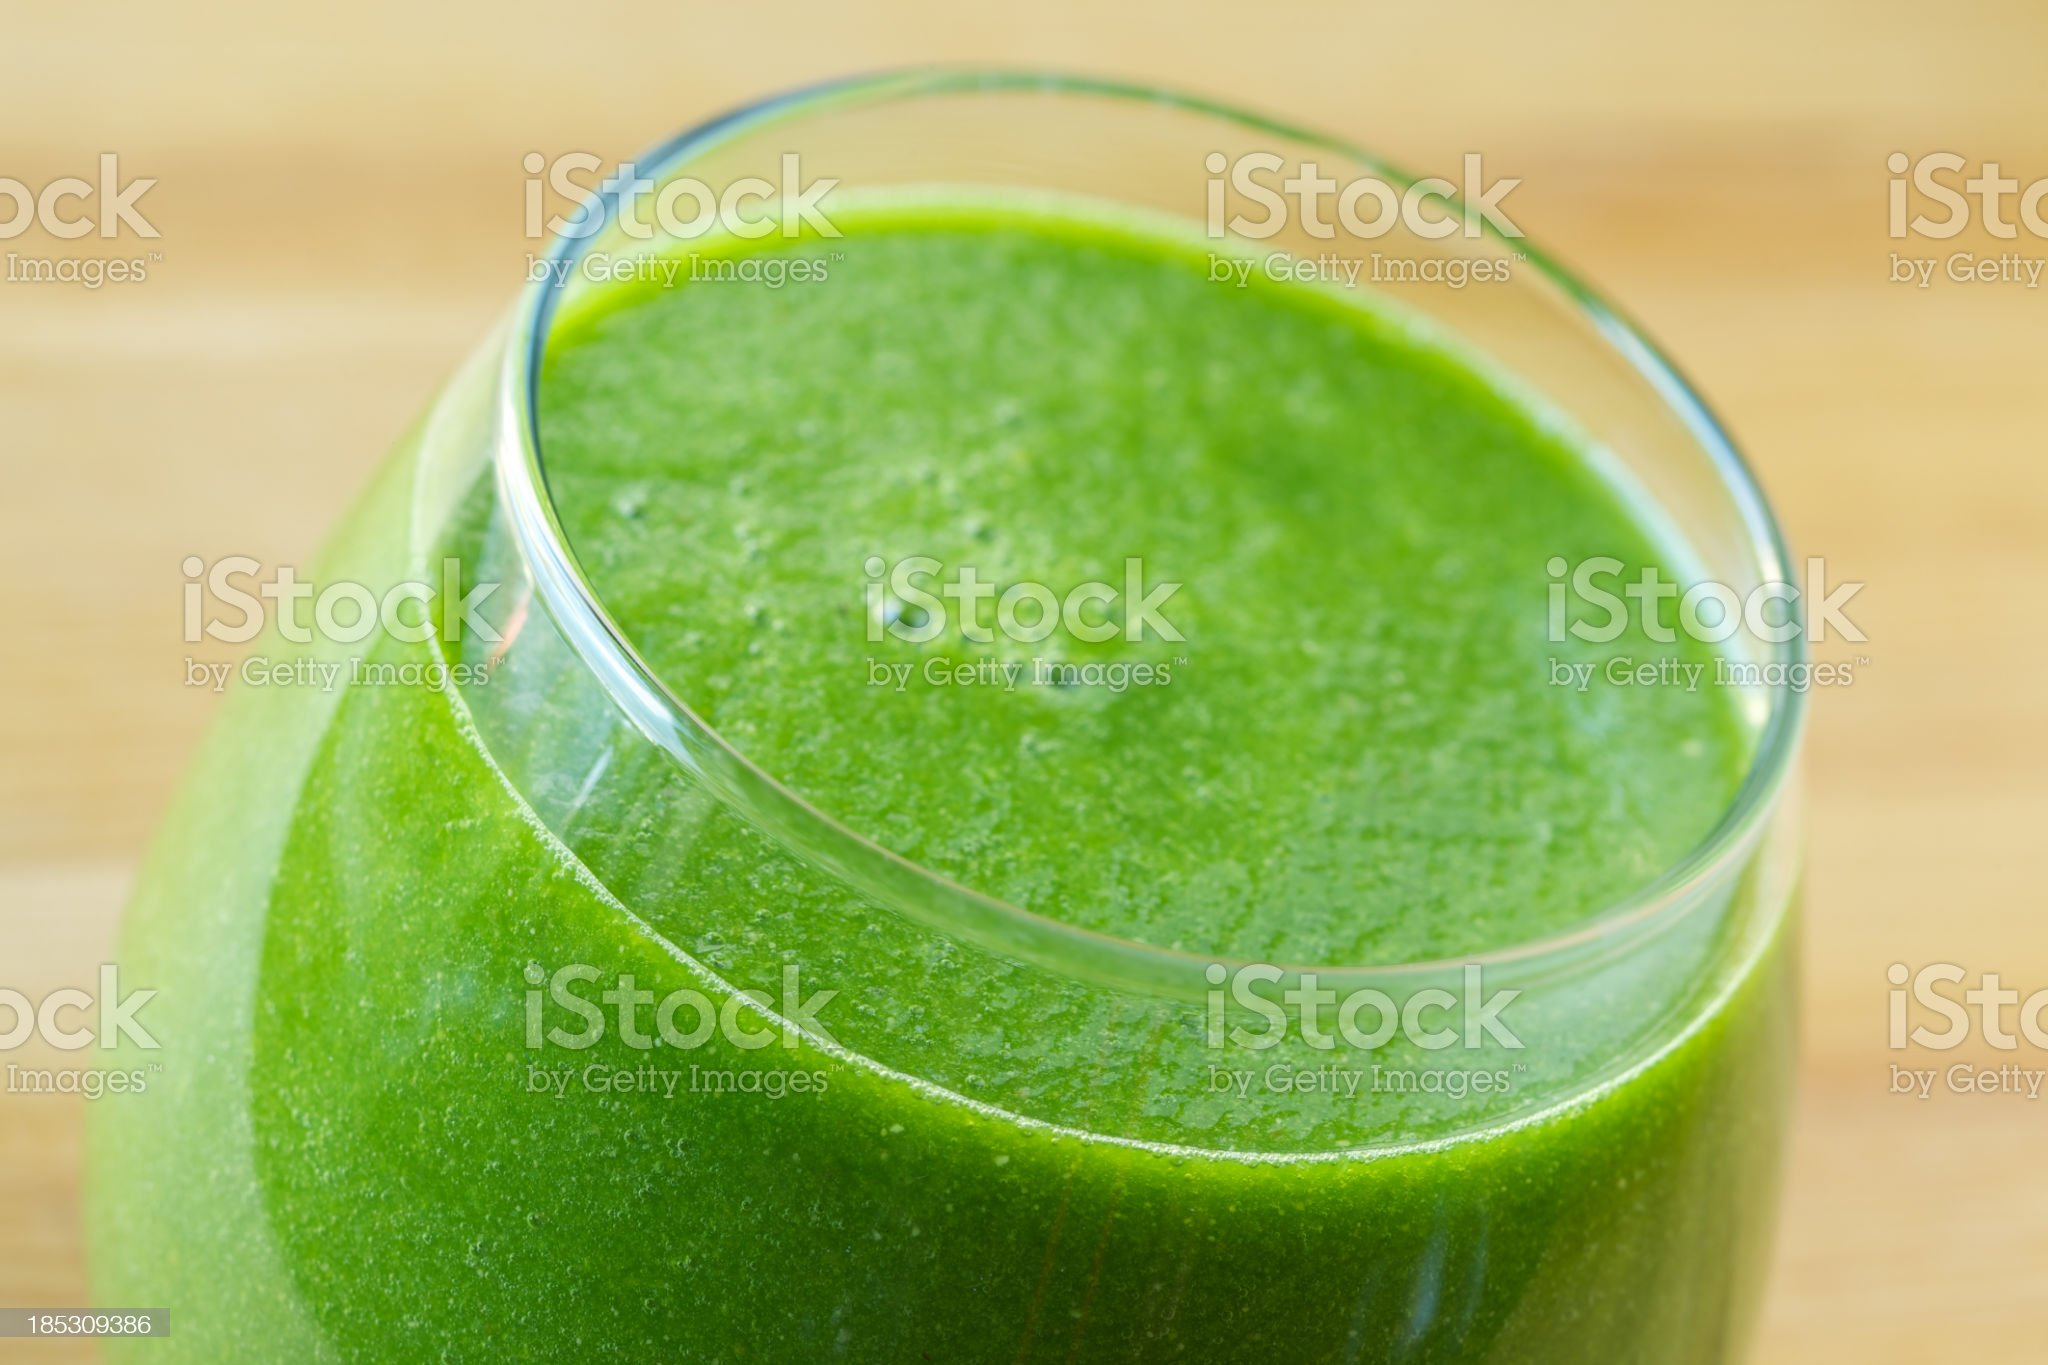 Green vegetable smoothie drink royalty-free stock photo